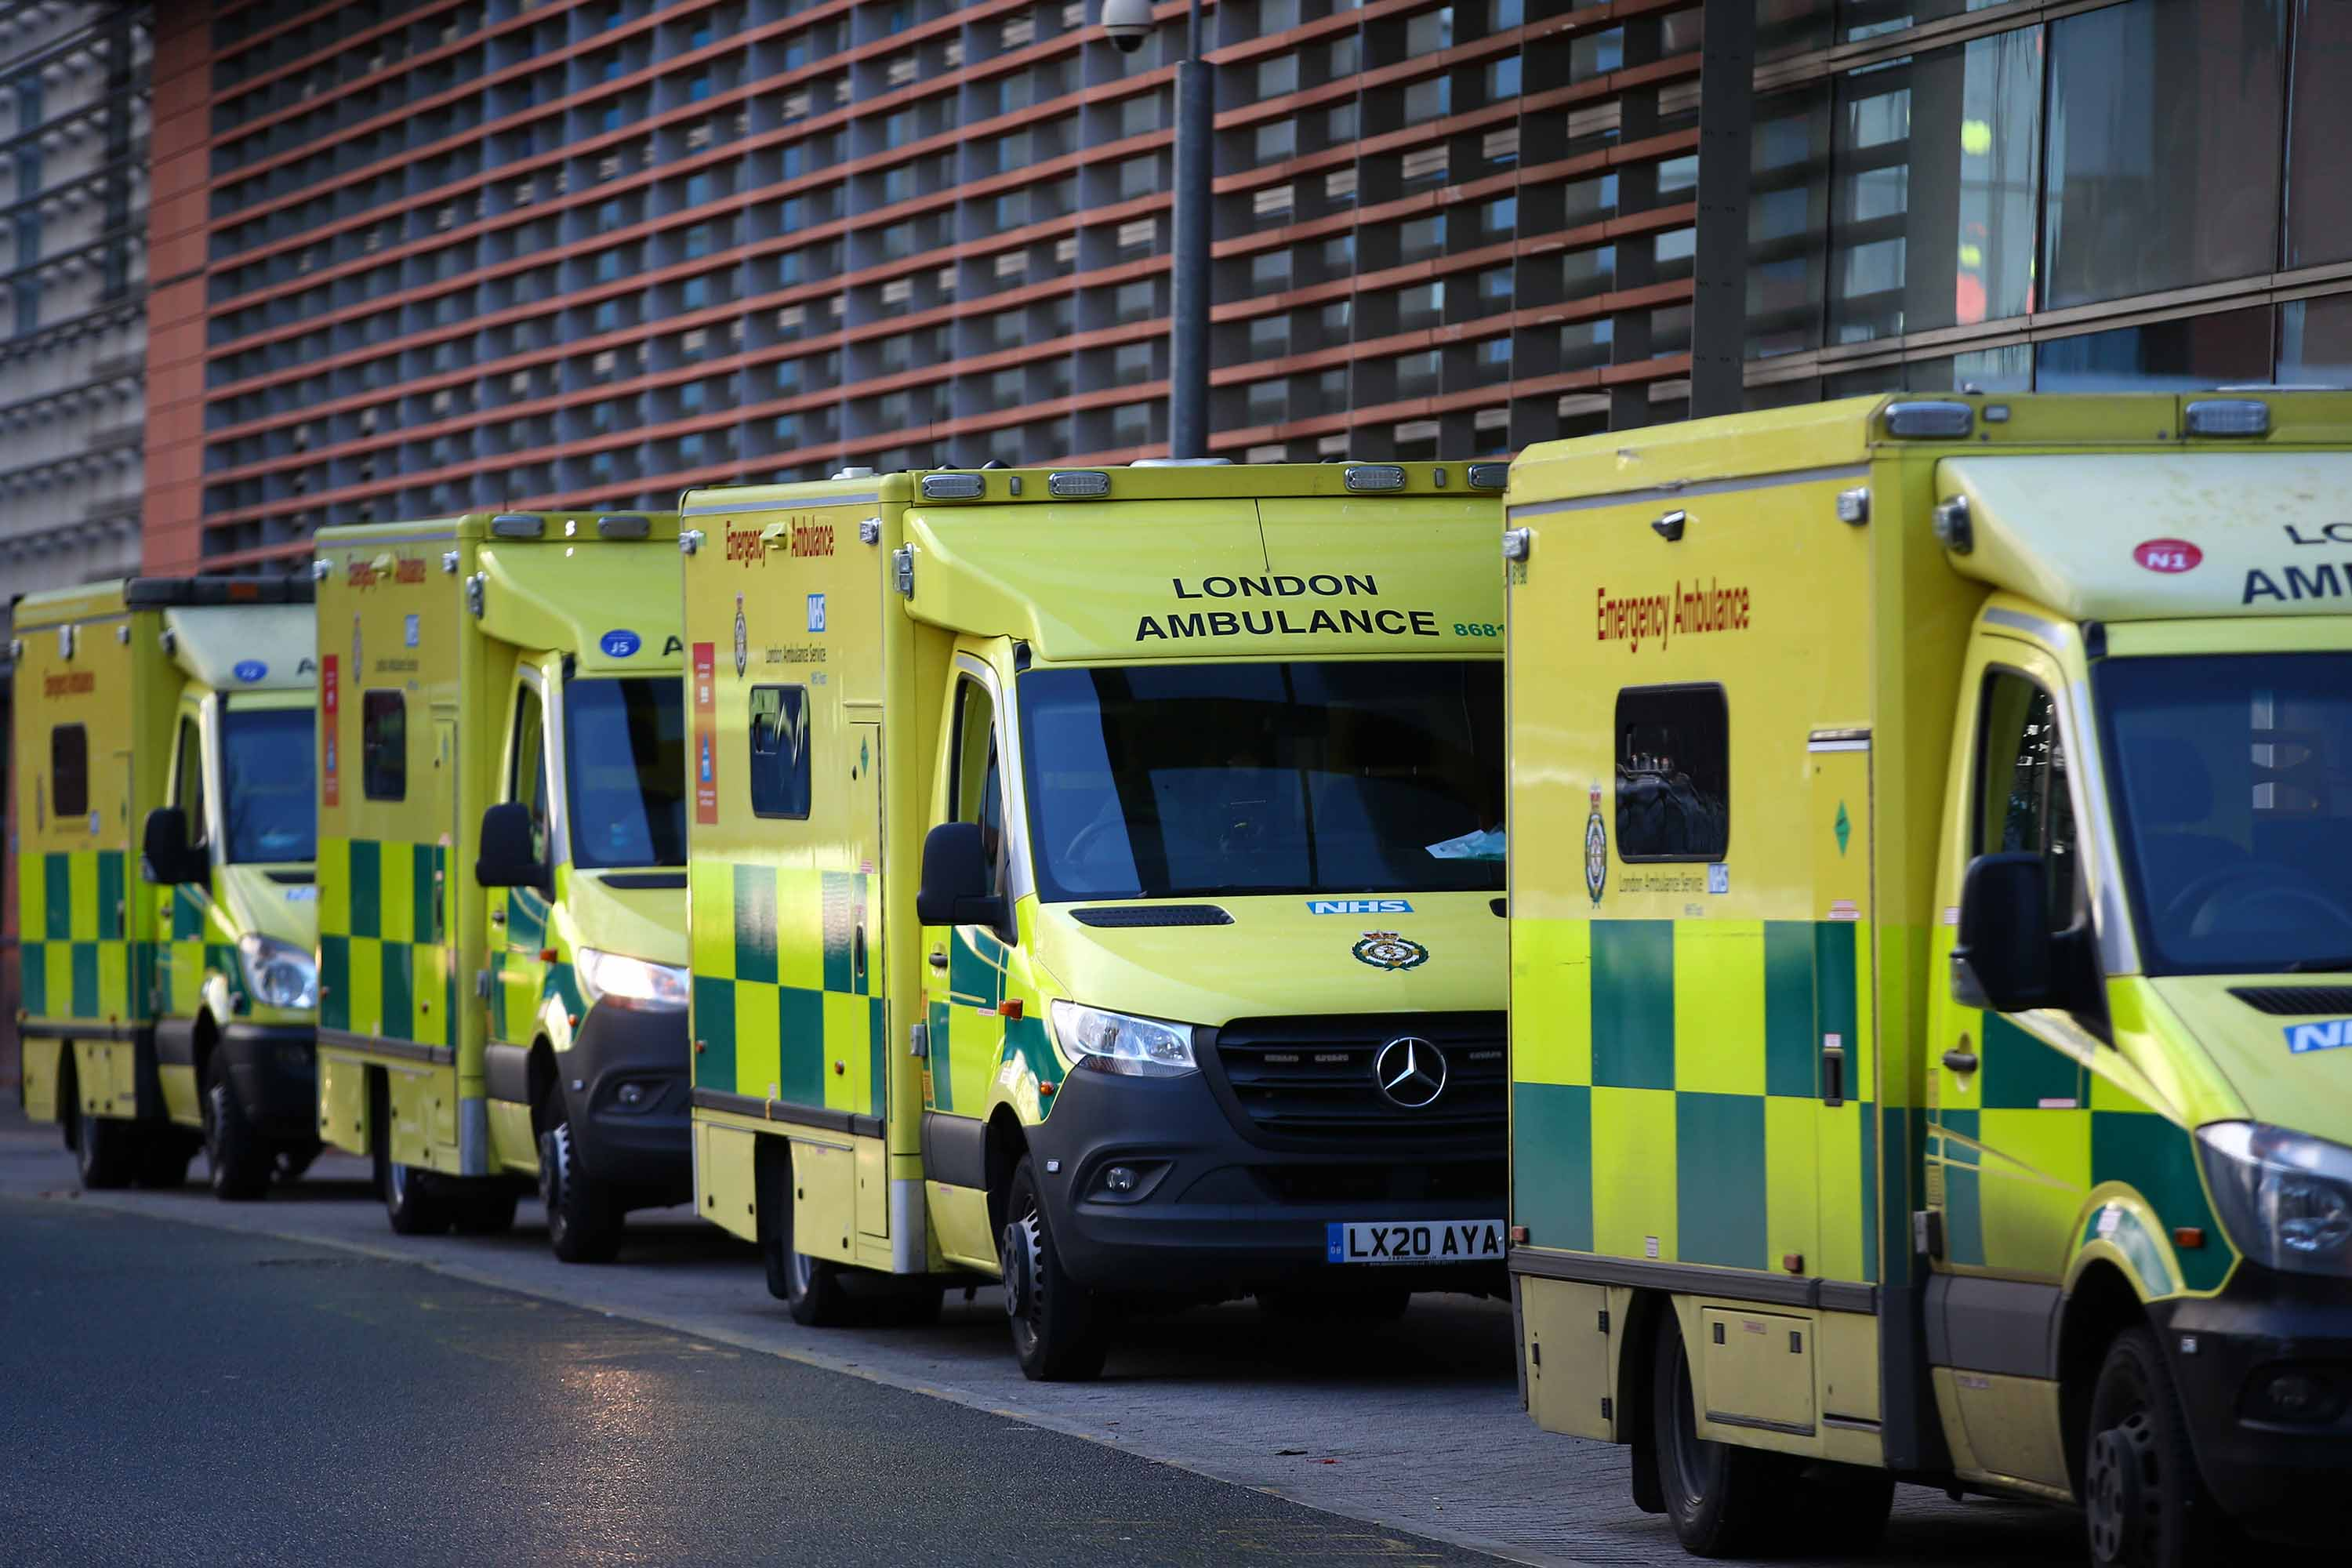 Ambulances are seen parked outside the Royal London Hospital in London, England, on December 27.